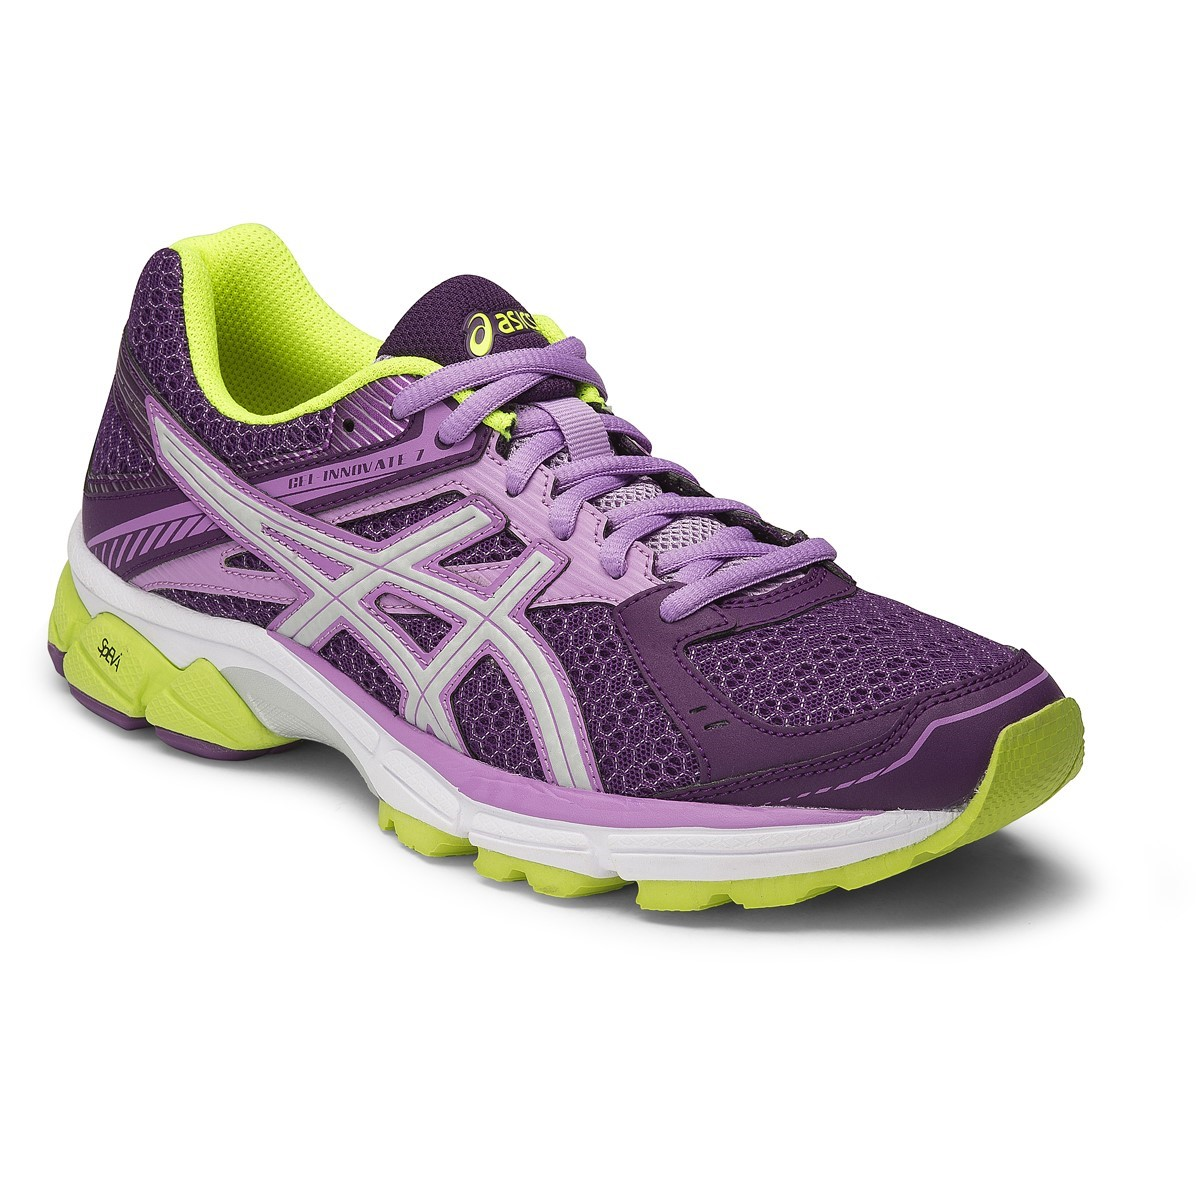 Asics Gel Innovate 7 - Womens Running Shoes - Purple/Silver/Flash Yellow